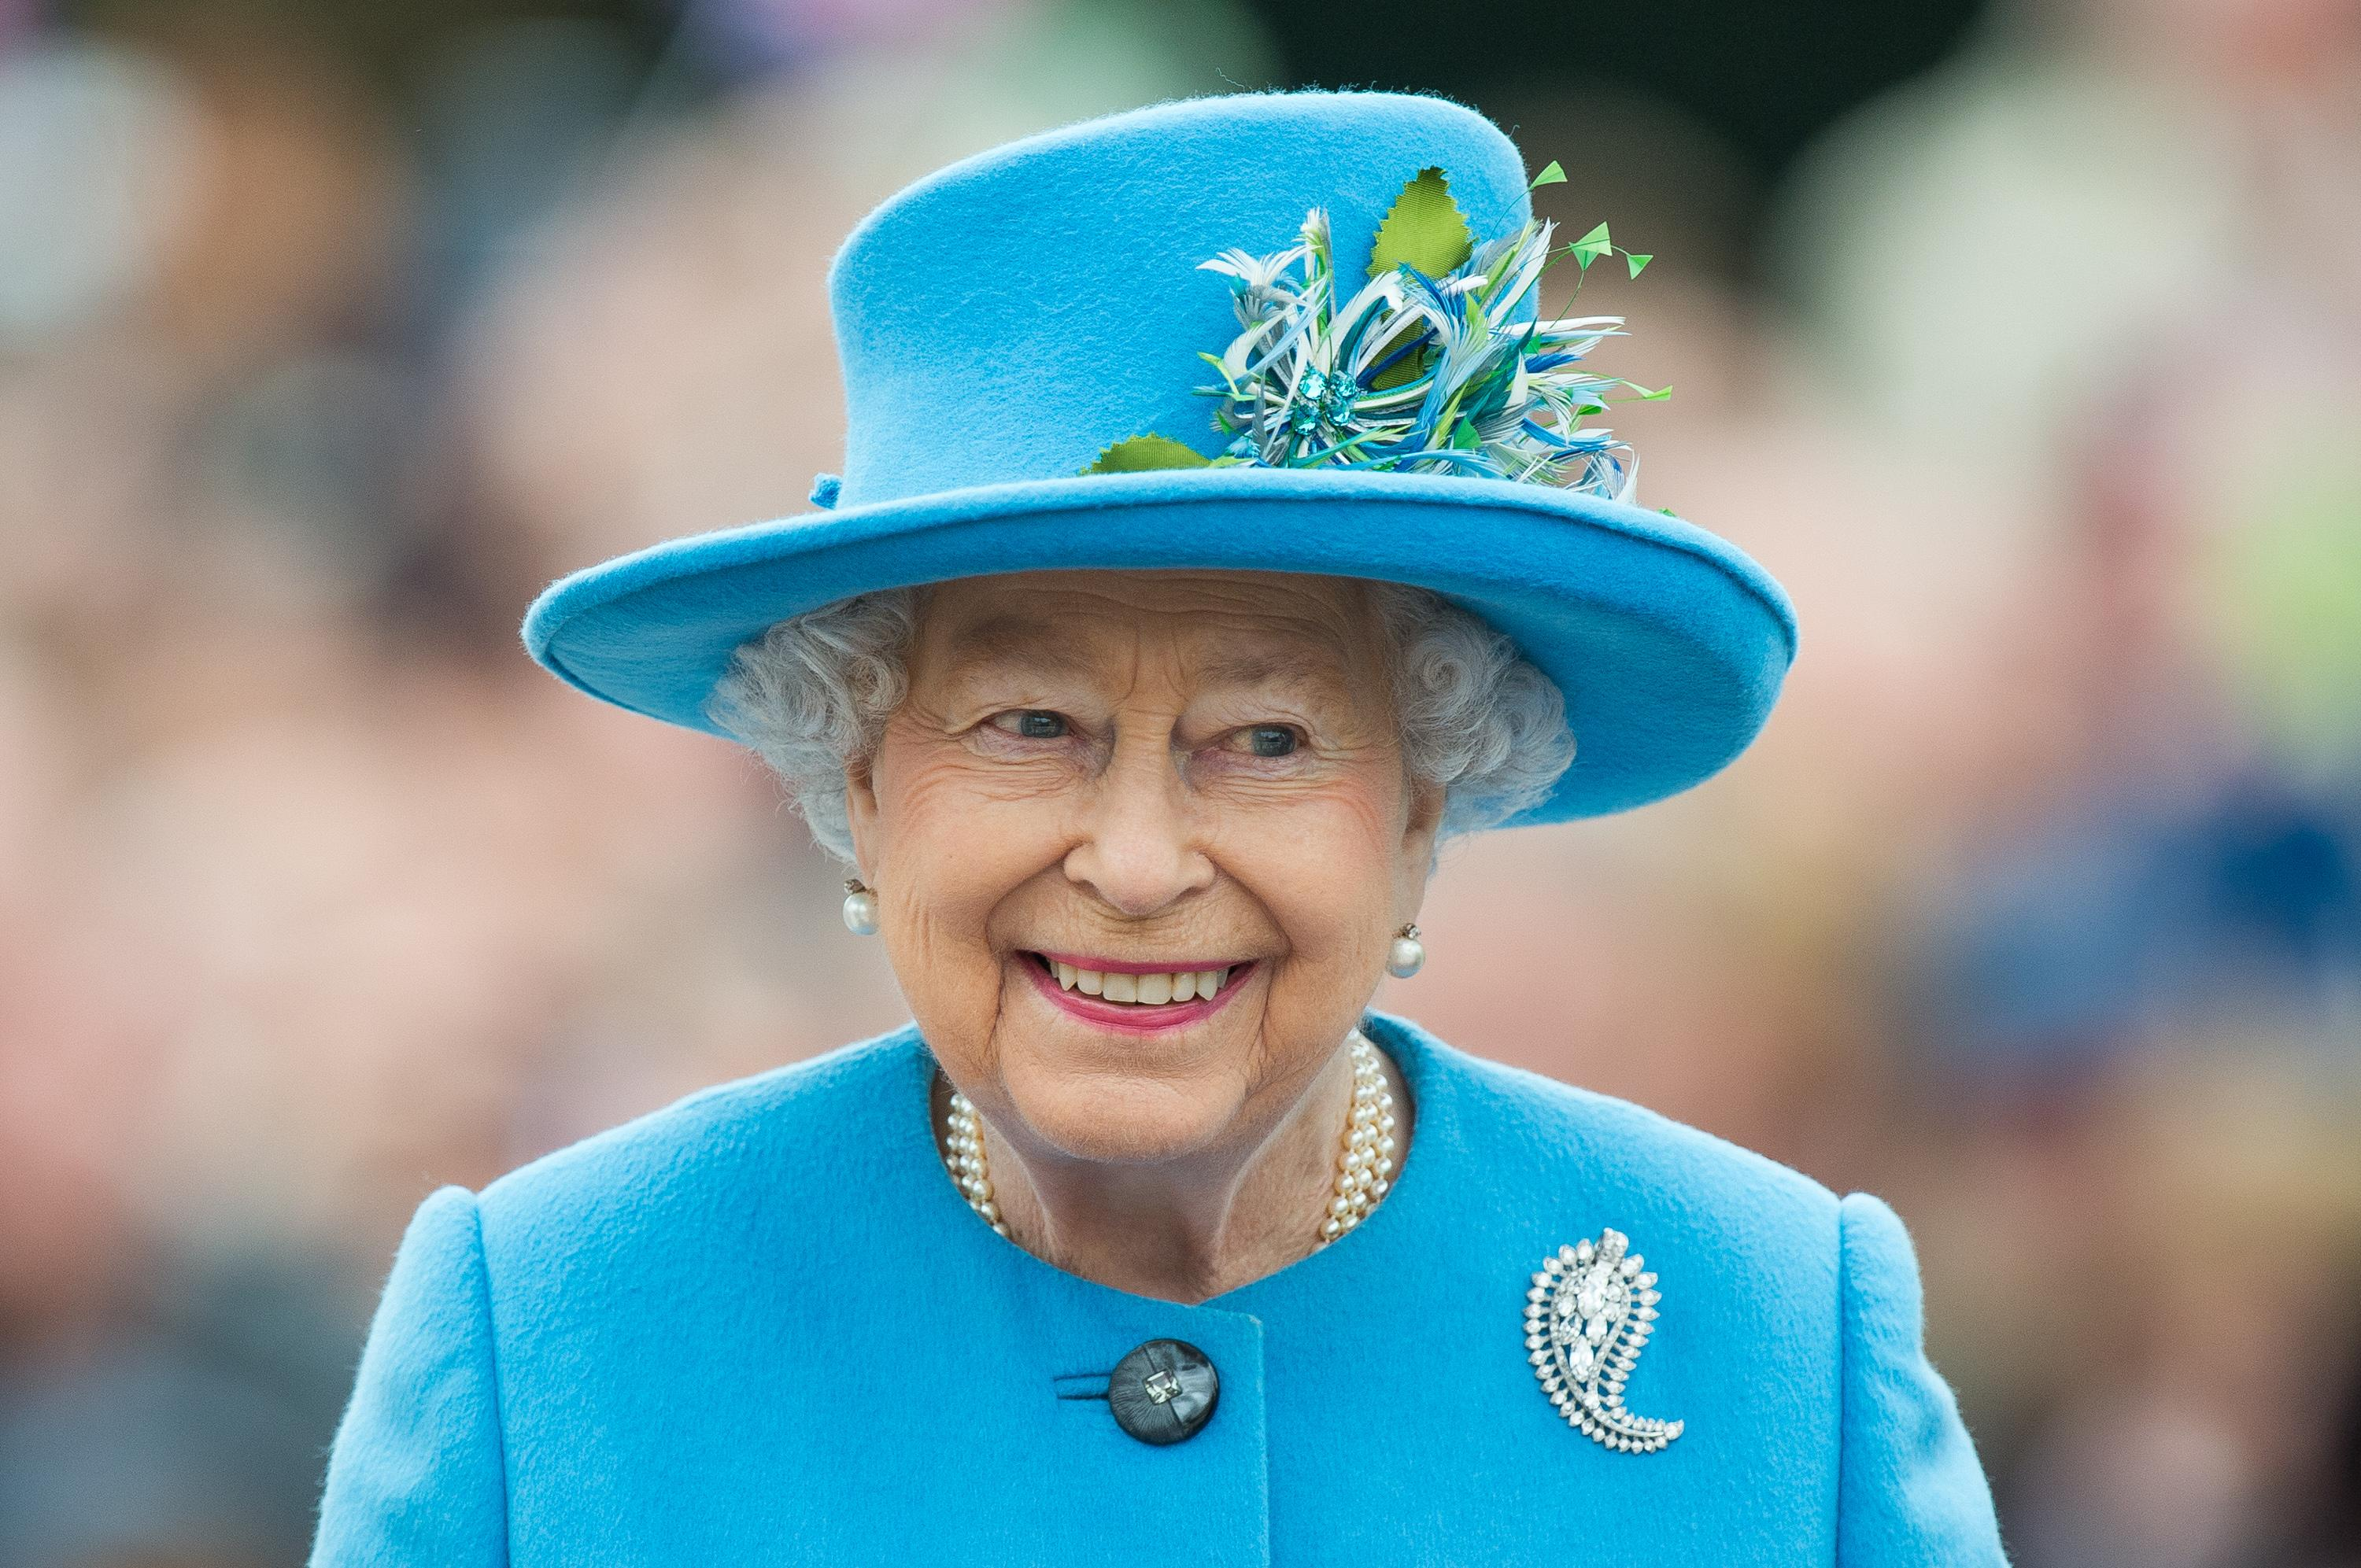 Queen Elizabeth discusses the coronavirus in powerful Easter speech